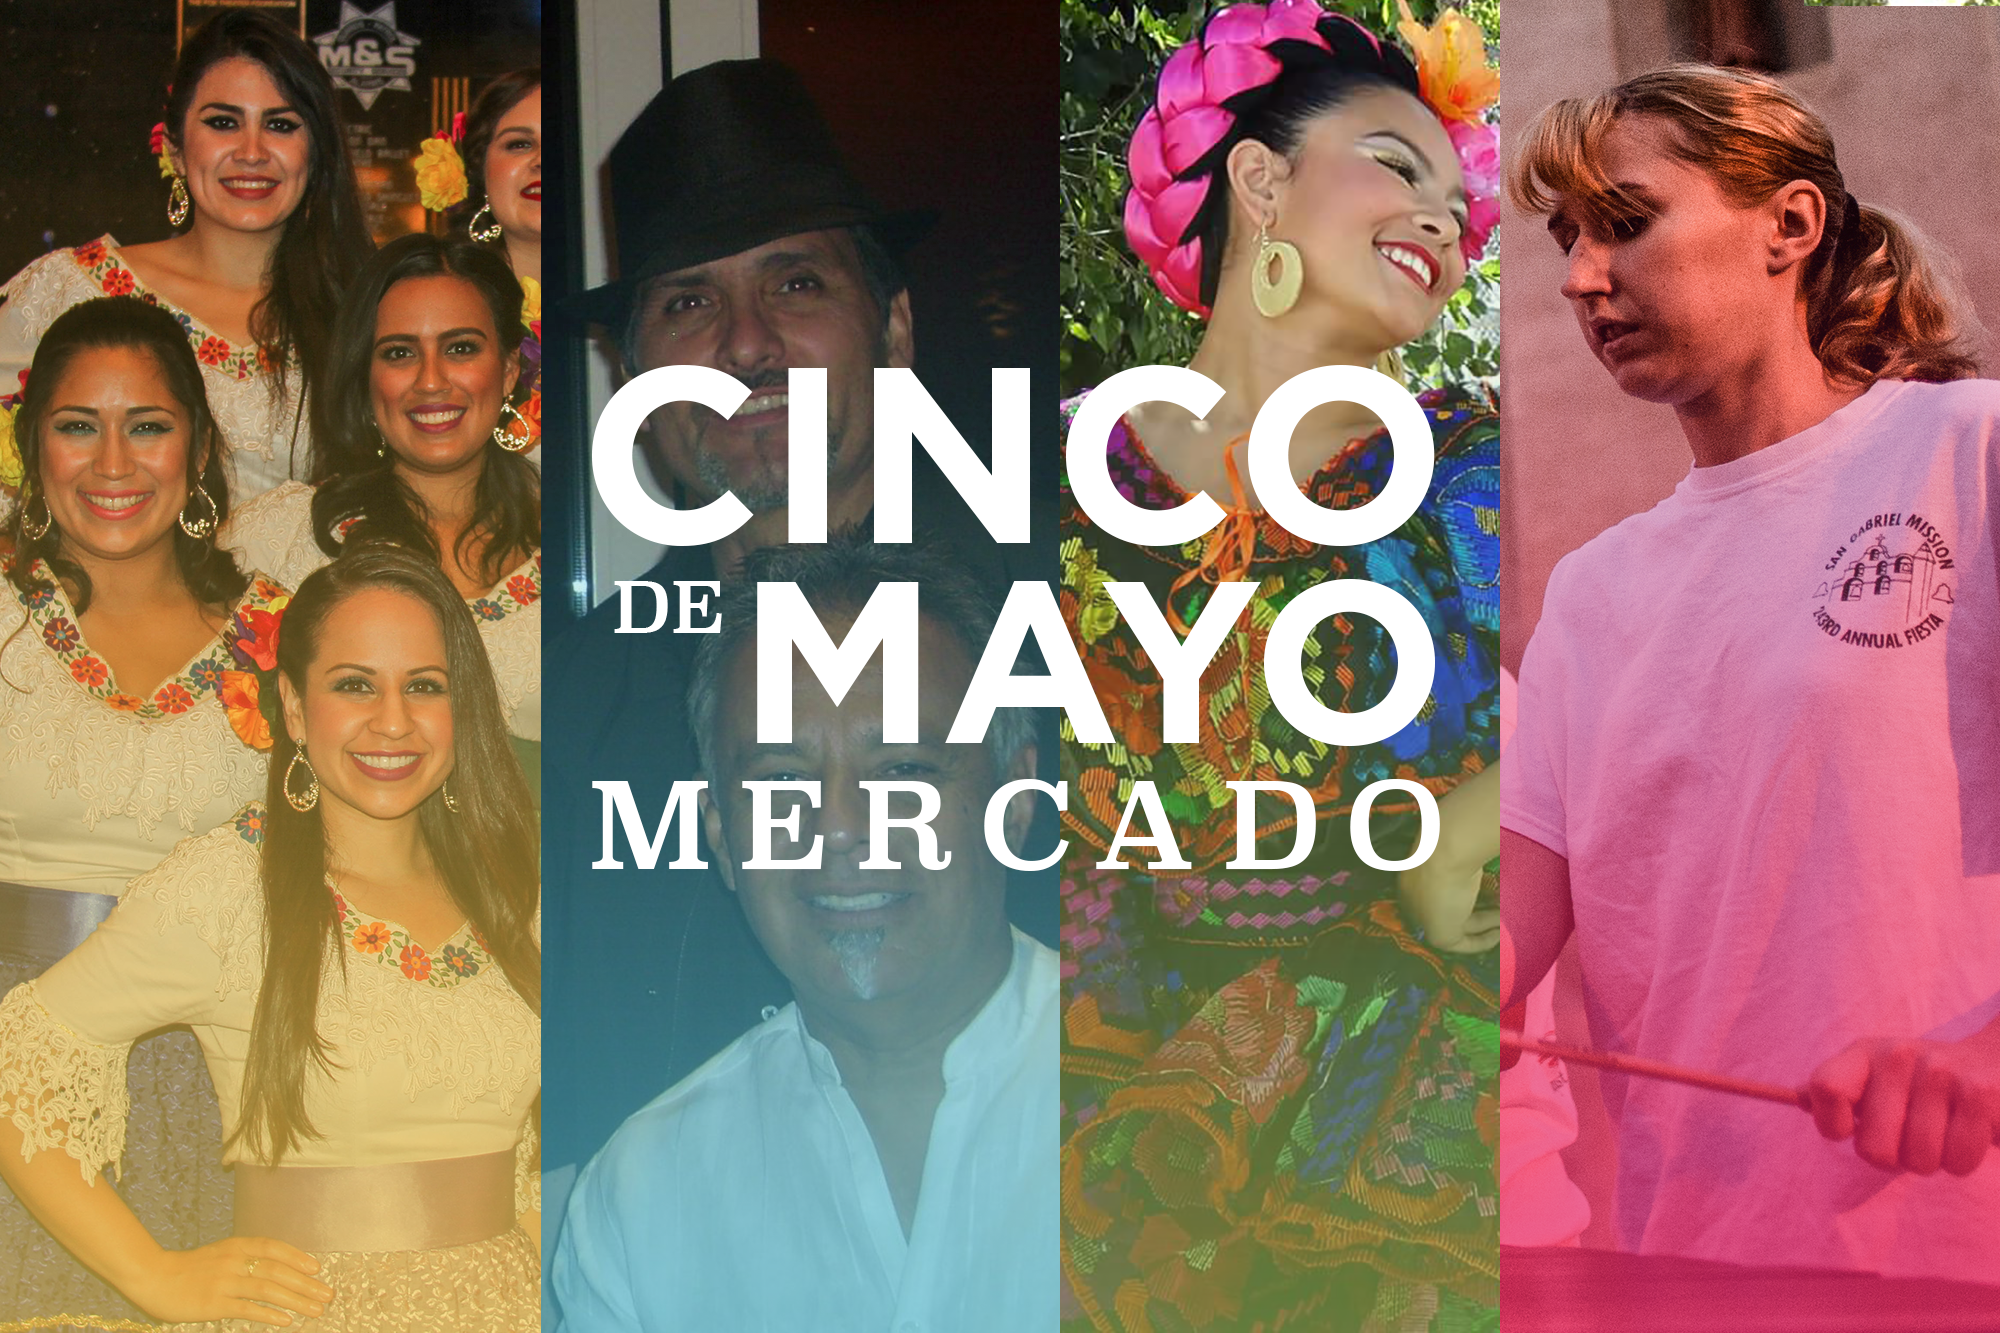 Entertainment at this year's Cinco de Mayo Mercado